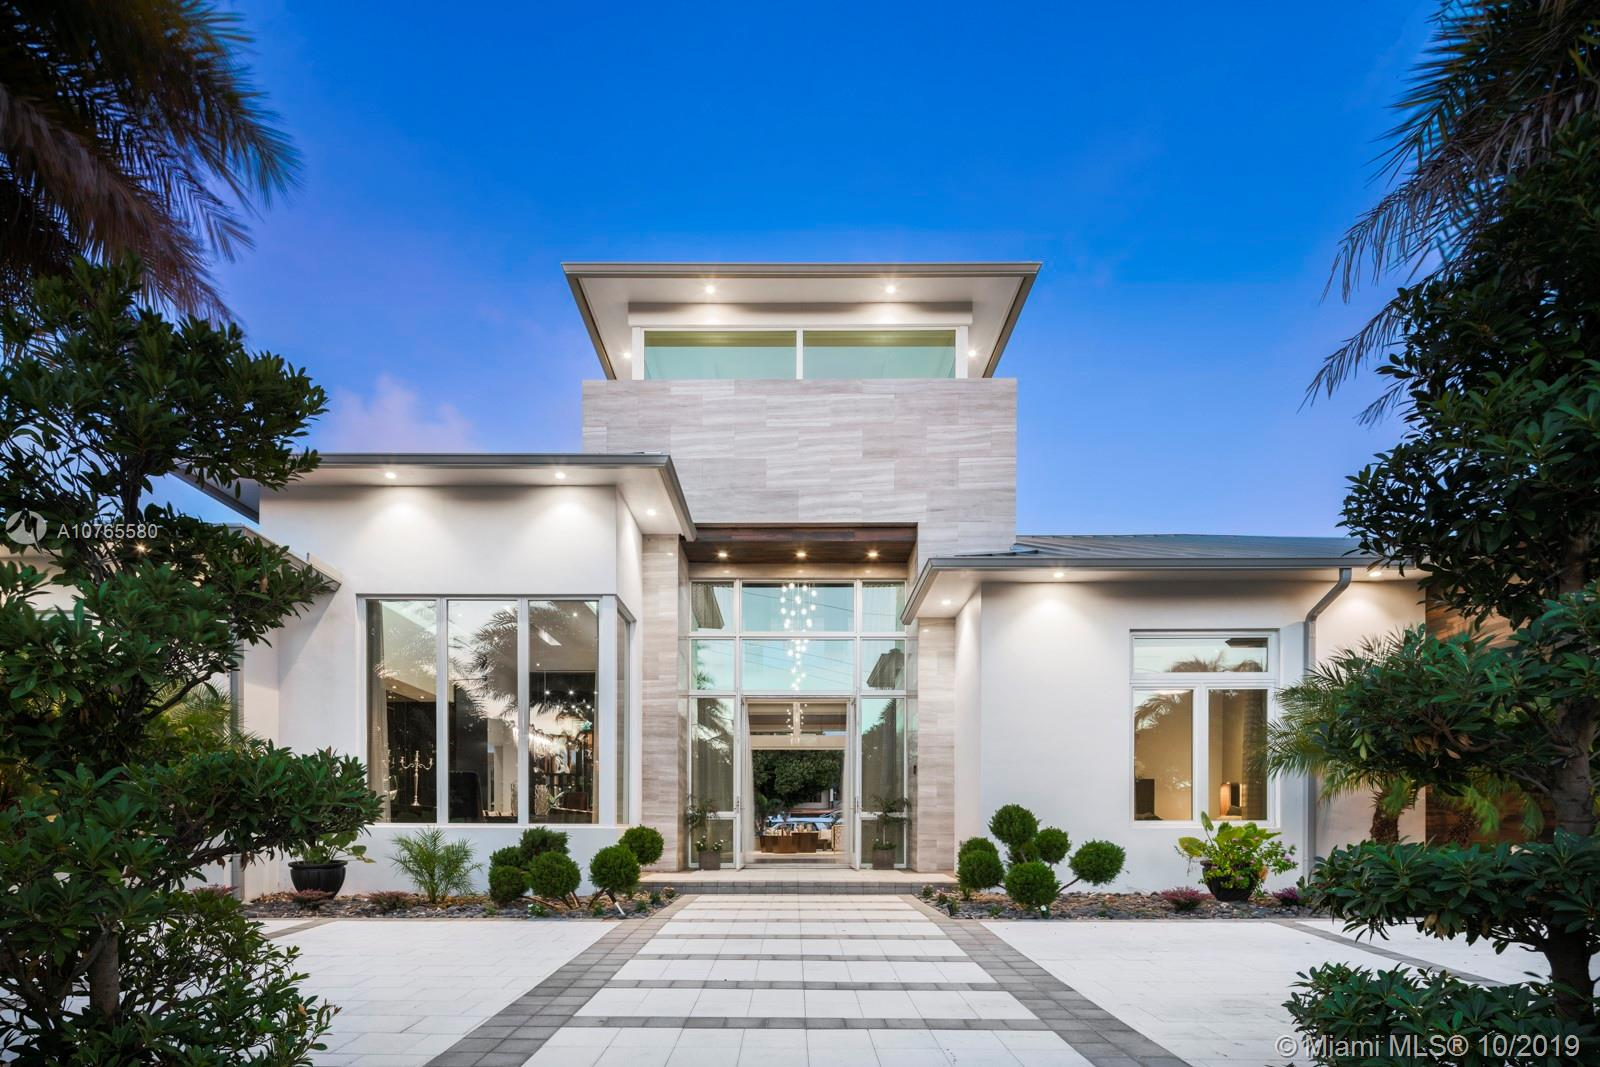 Spectacular Seven Isles single story waterfront estate featuring over 8000 sq feet of living luxury. Nestled on 160 feet of water frontage and steps to Las Olas.  Reduced millions for a quick sale.  Designer finishes by Steven G and available turnkey.  This stunning showplace offers 6 en suite bedrooms/7.5 baths.  Volume ceilings, luxe master suite, gourmet kitchen with custom lighting and imported fixtures.  Distinctively crafted for the most discerning taste. Dock your yacht and have room for up to 8 cars in the garage with privacy gate.   Great value and ready for immediate occupancy.